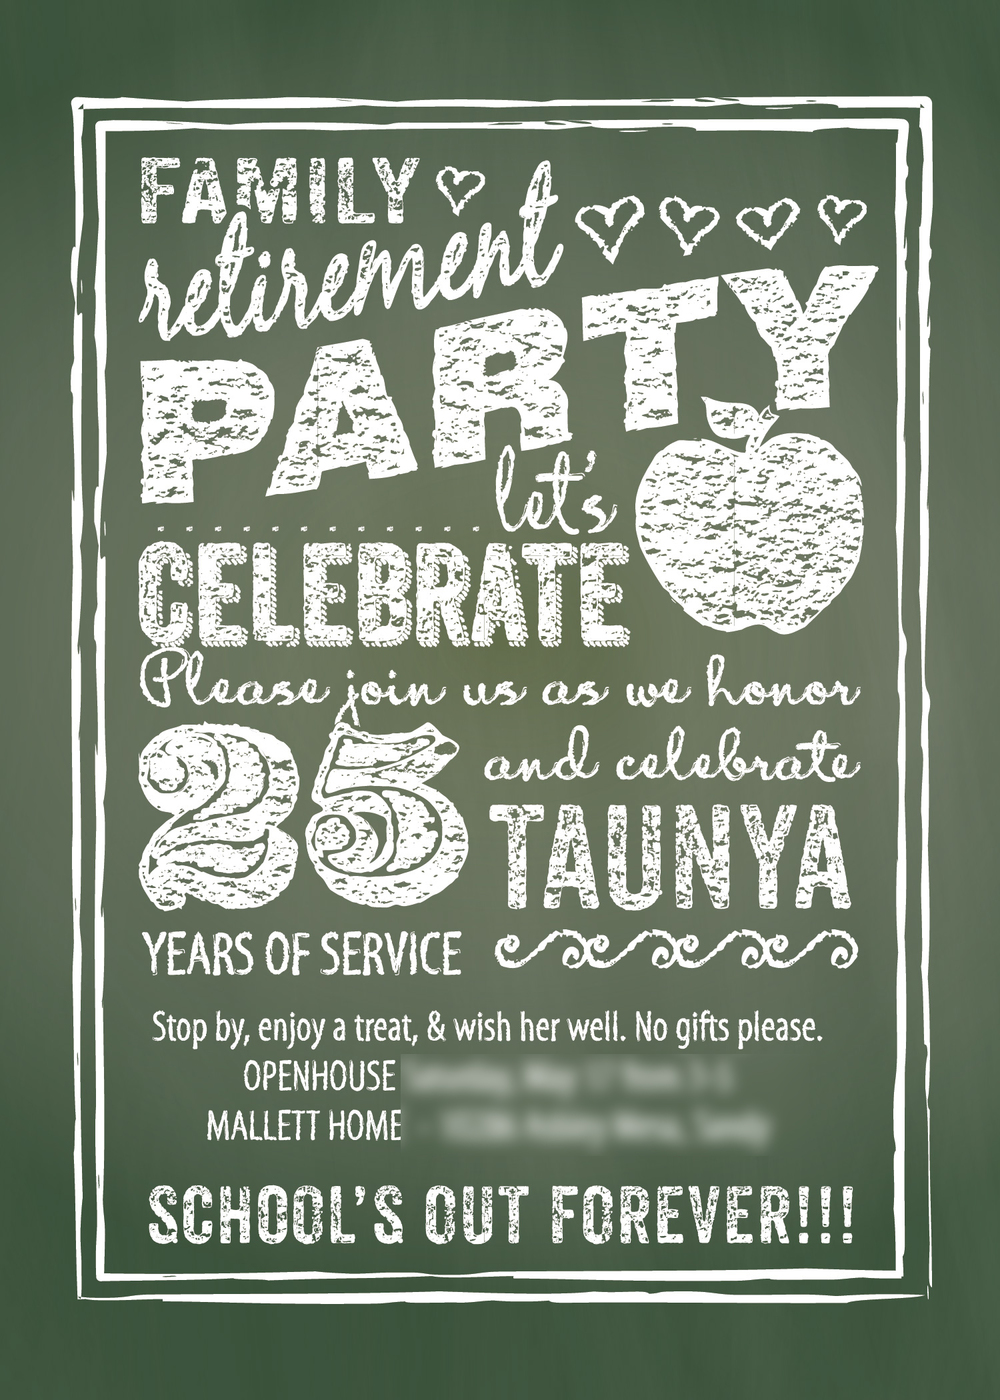 Taunya's retirement party invitation